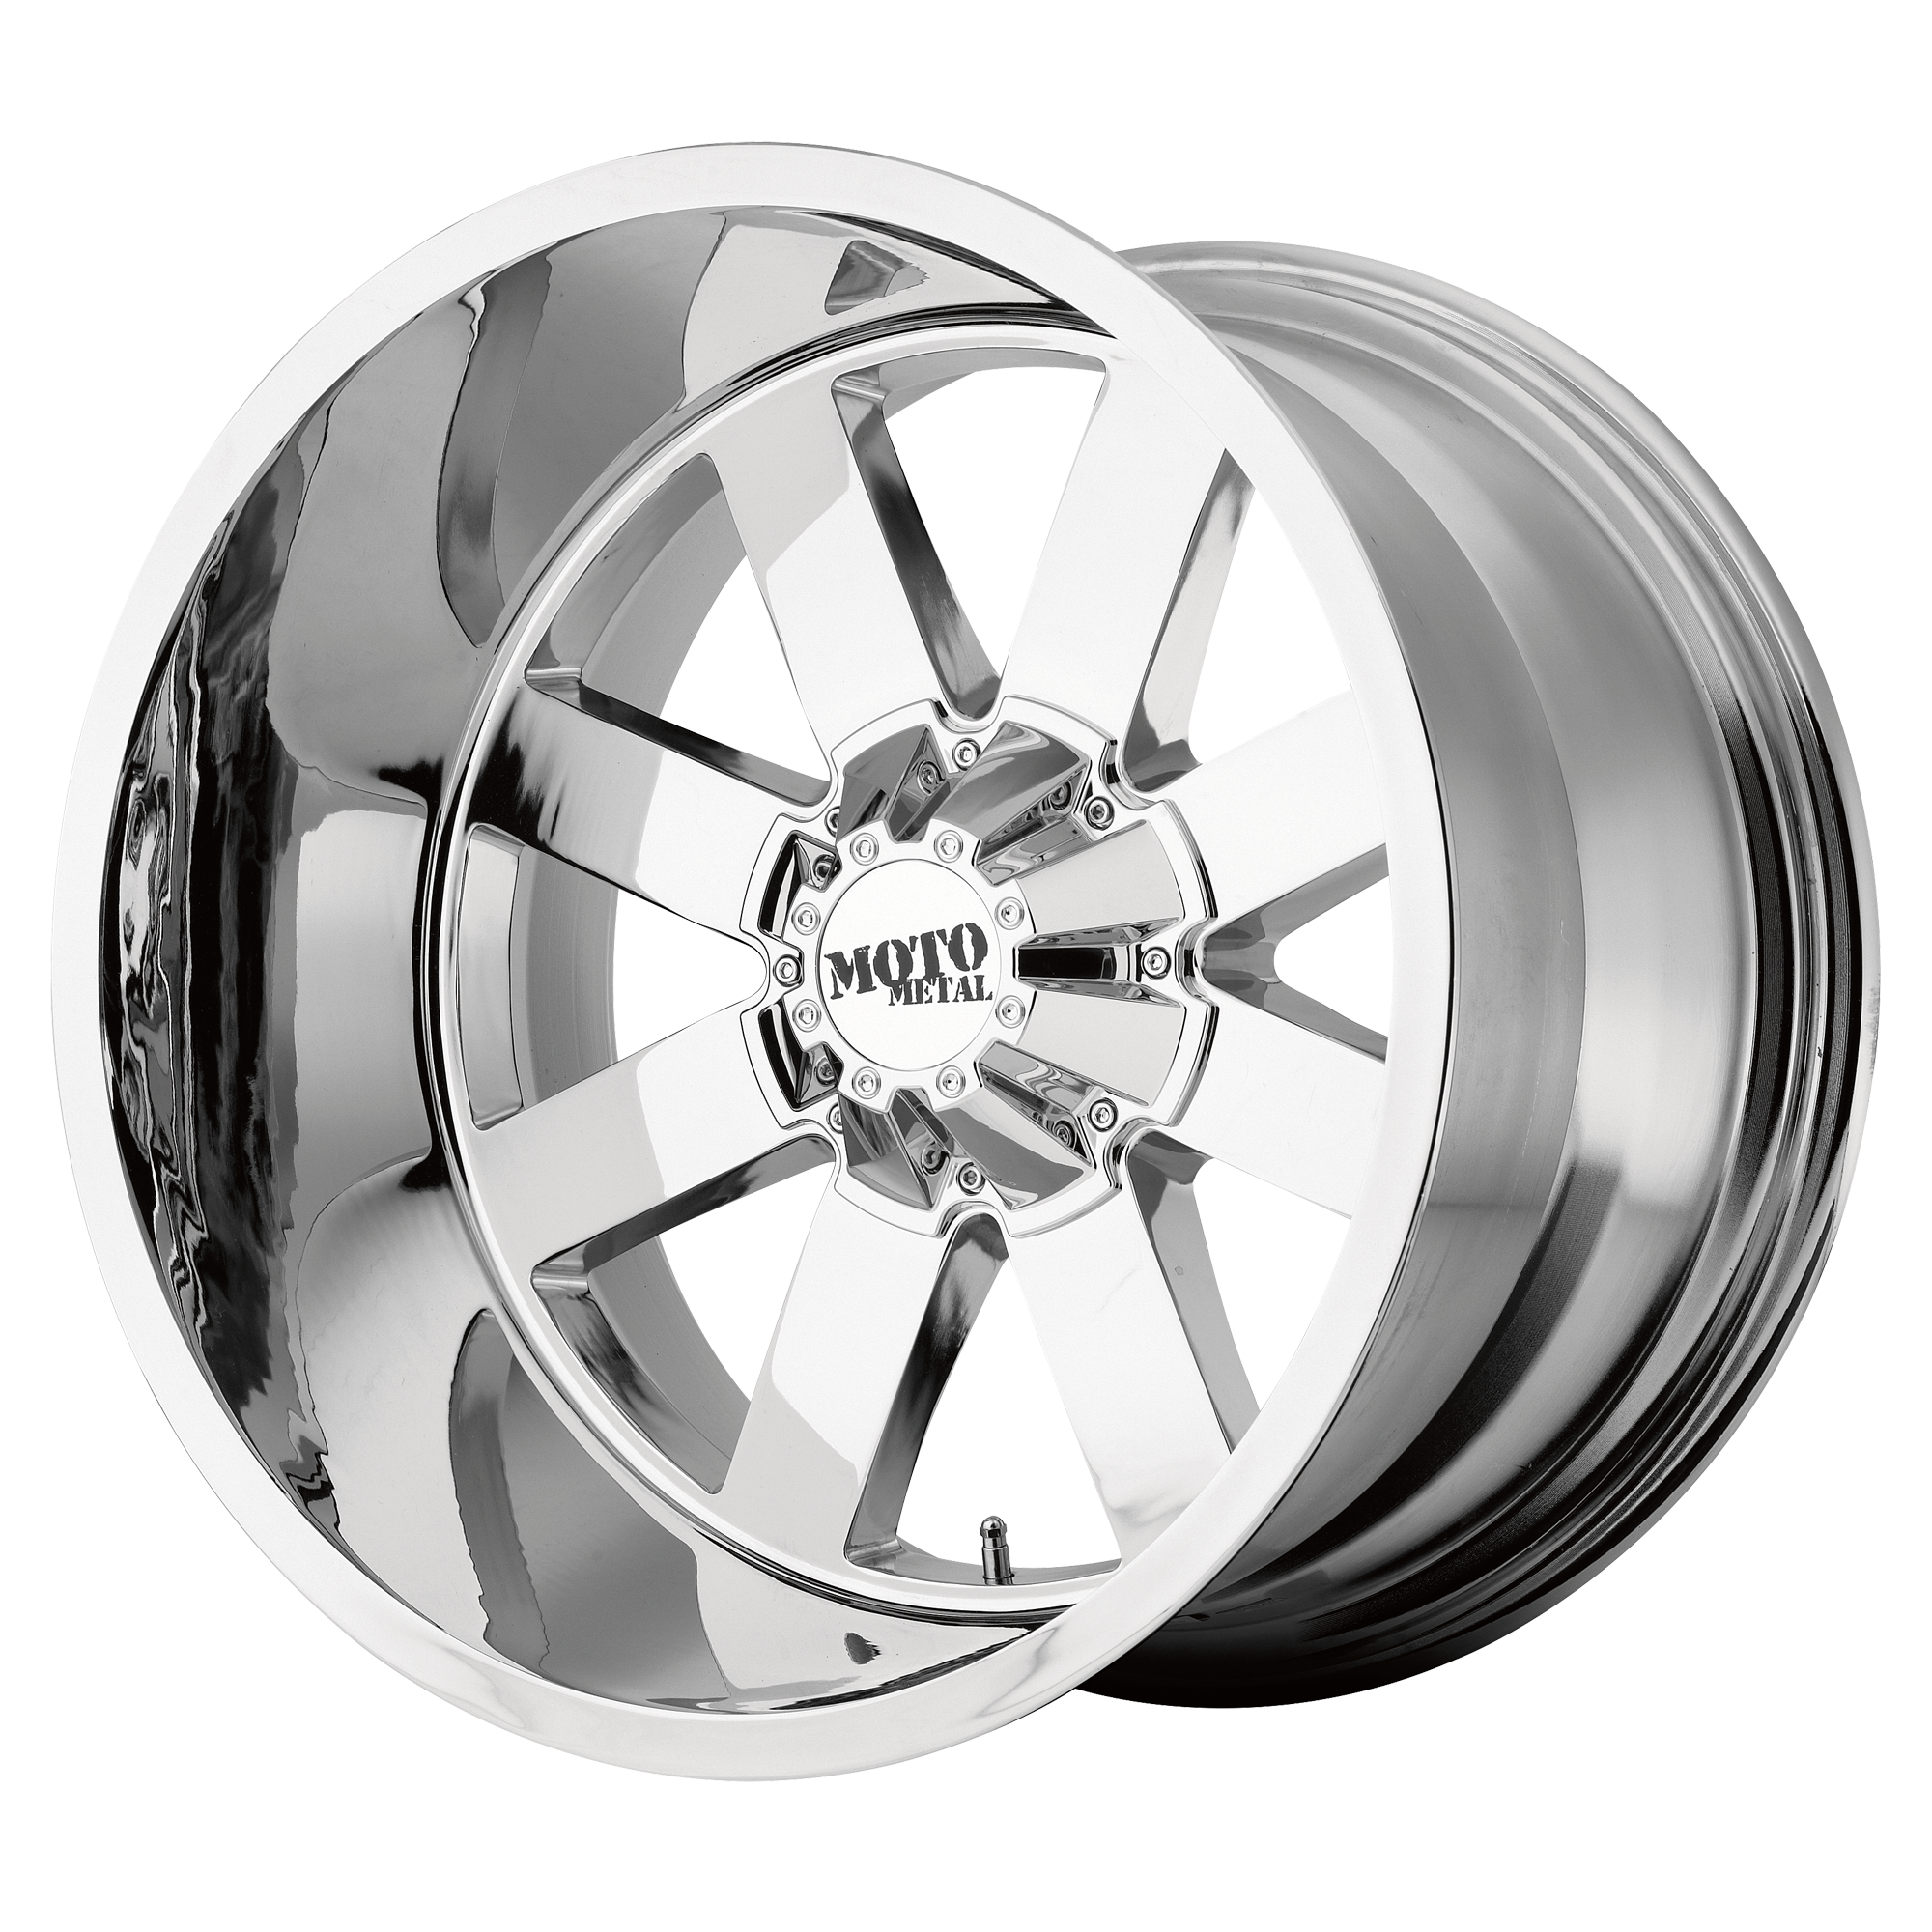 Moto Metal Offroad Wheels MO962 Chrome